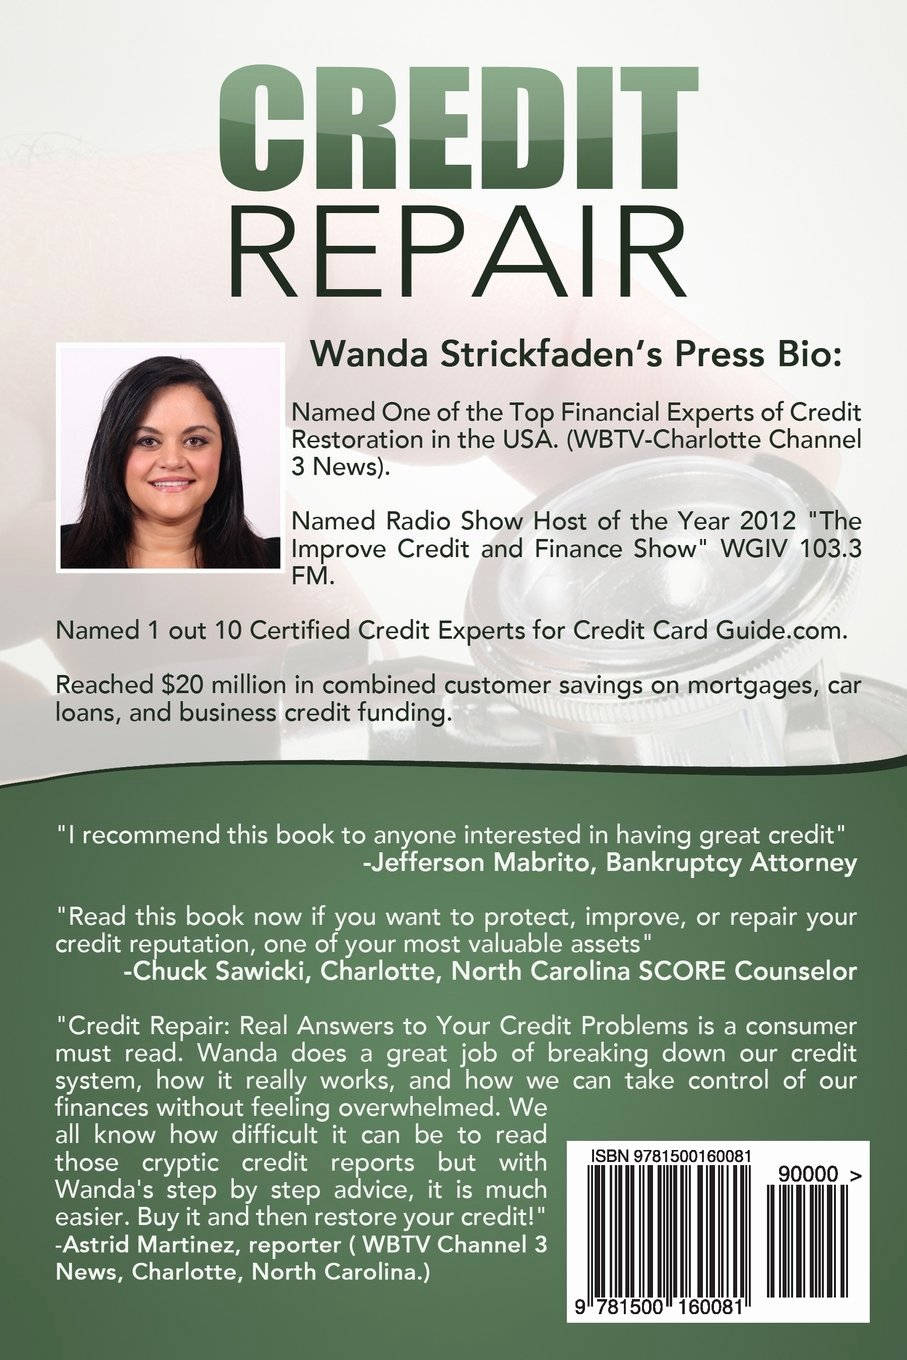 Credit Repair Flyer Template New Credit Repair Flyers Baskanai